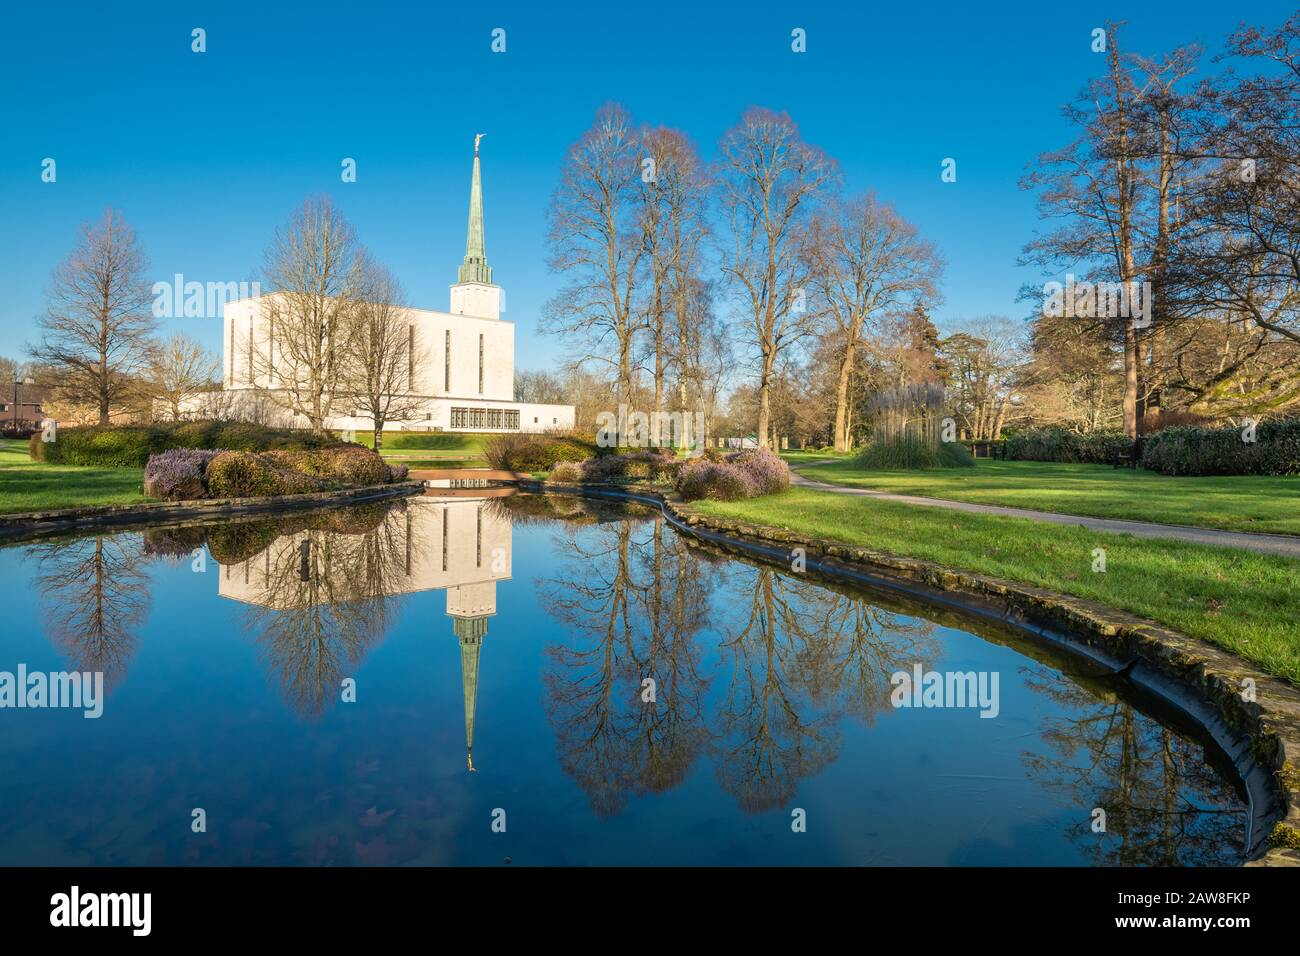 Mormon London England Temple, of The Church of Jesus Christ of Latter-day Saints (LDS Church) near Newchapel, Surrey, UK Stock Photo